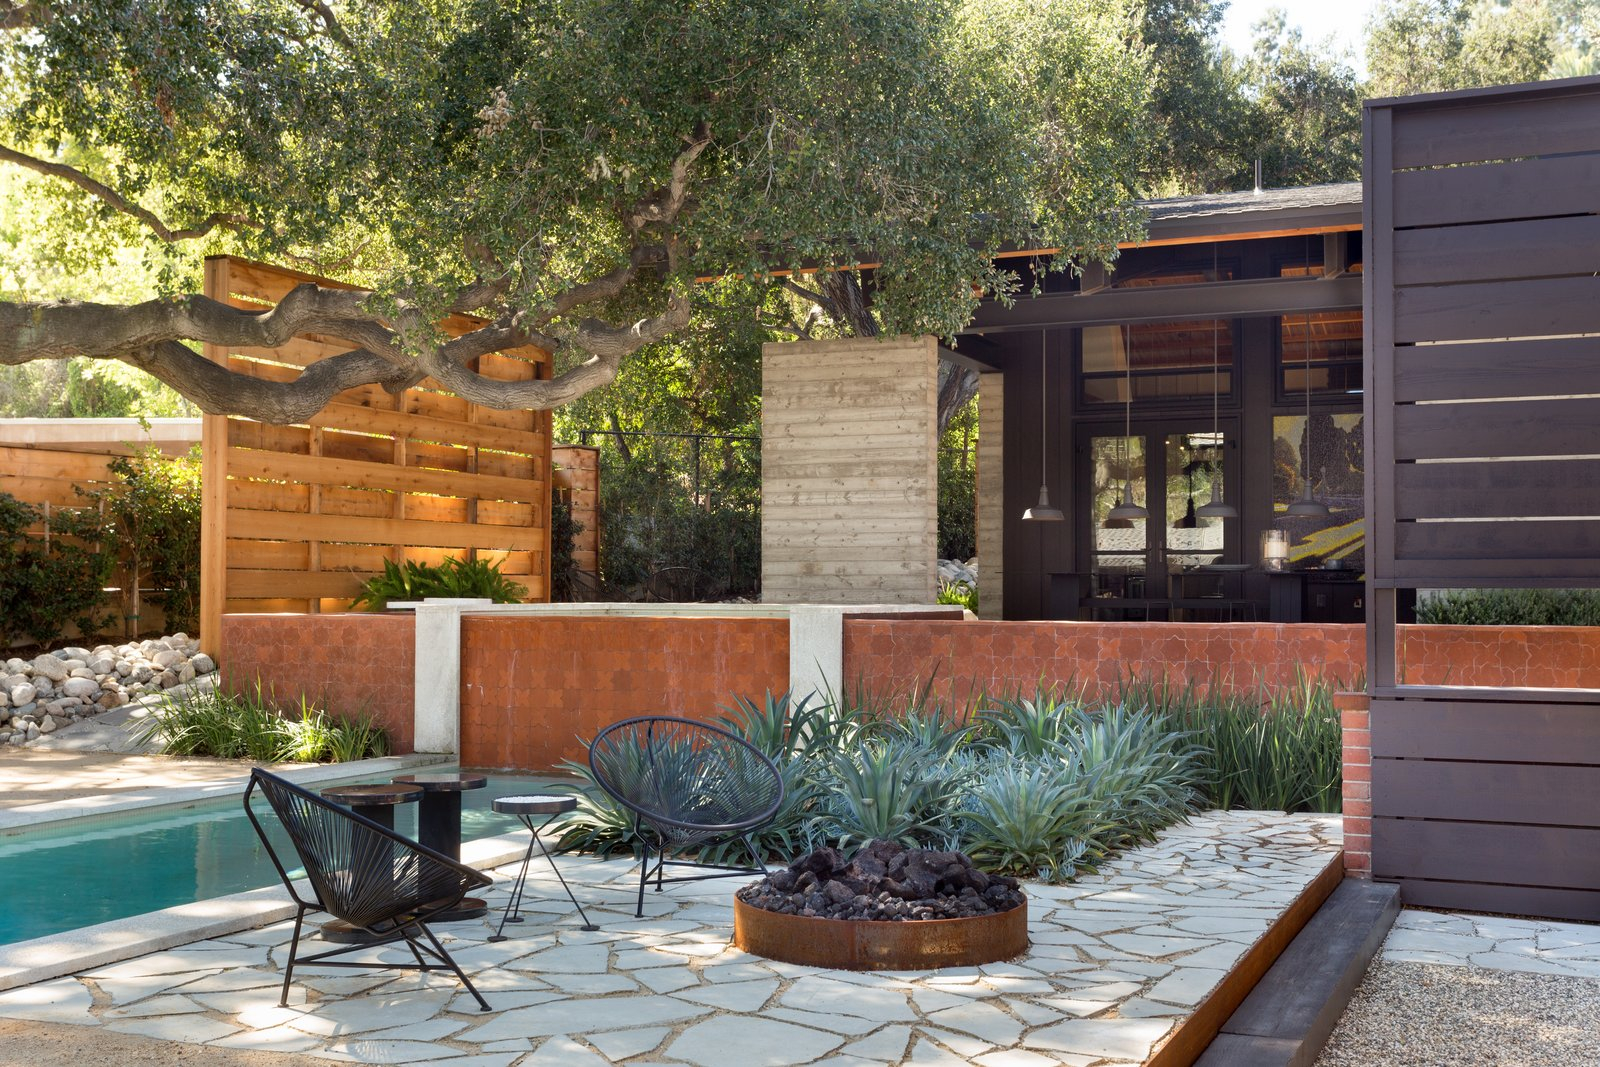 6 Backyard Landscape Designs That Need Minimal Maintenance Dwell with 15 Genius Concepts of How to Make Images Of Backyard Landscaping